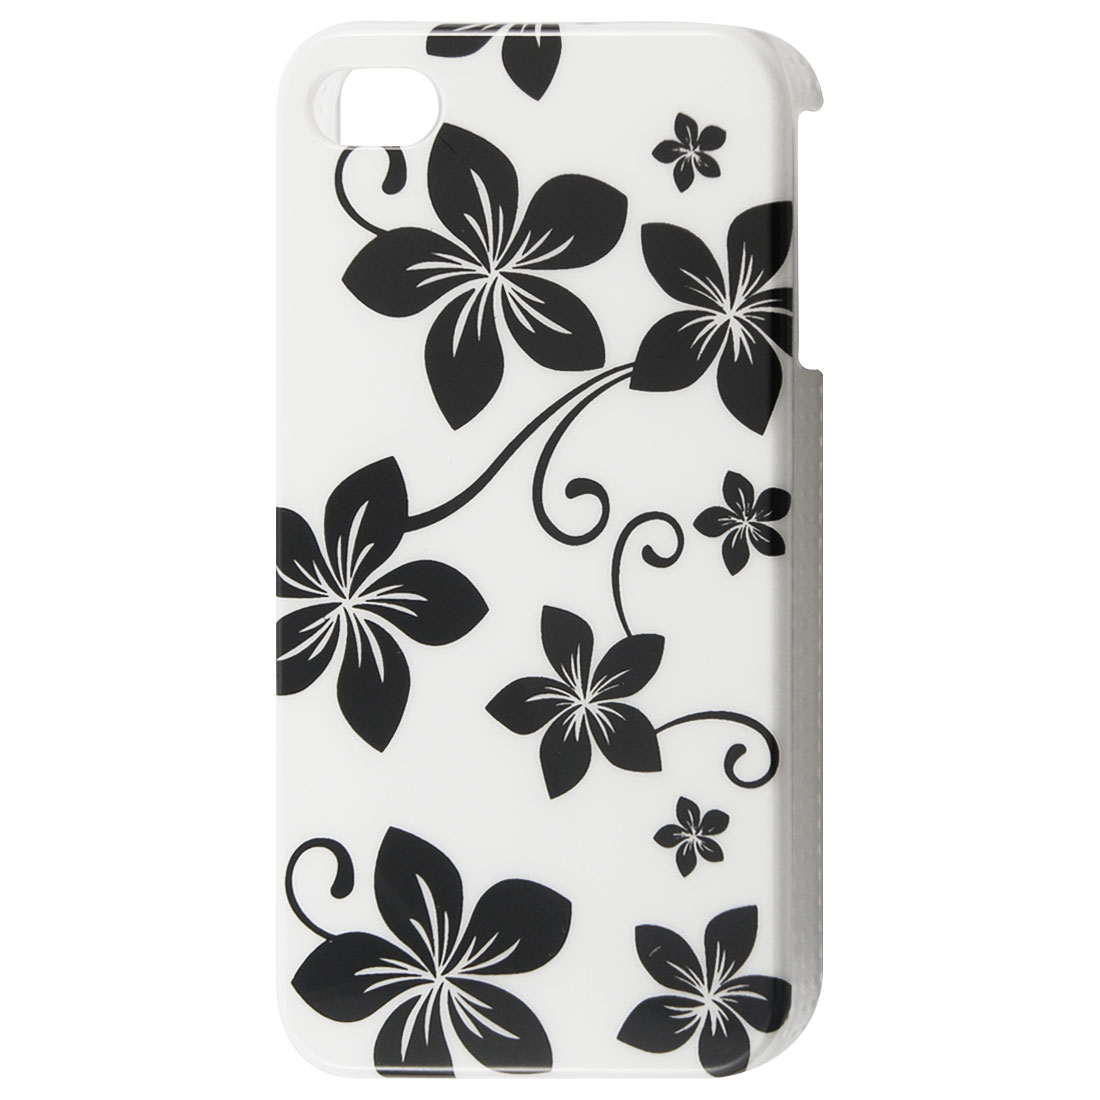 White Background Black Flowers IMD Plastic Back Case for iPhone 4 4S 4GS